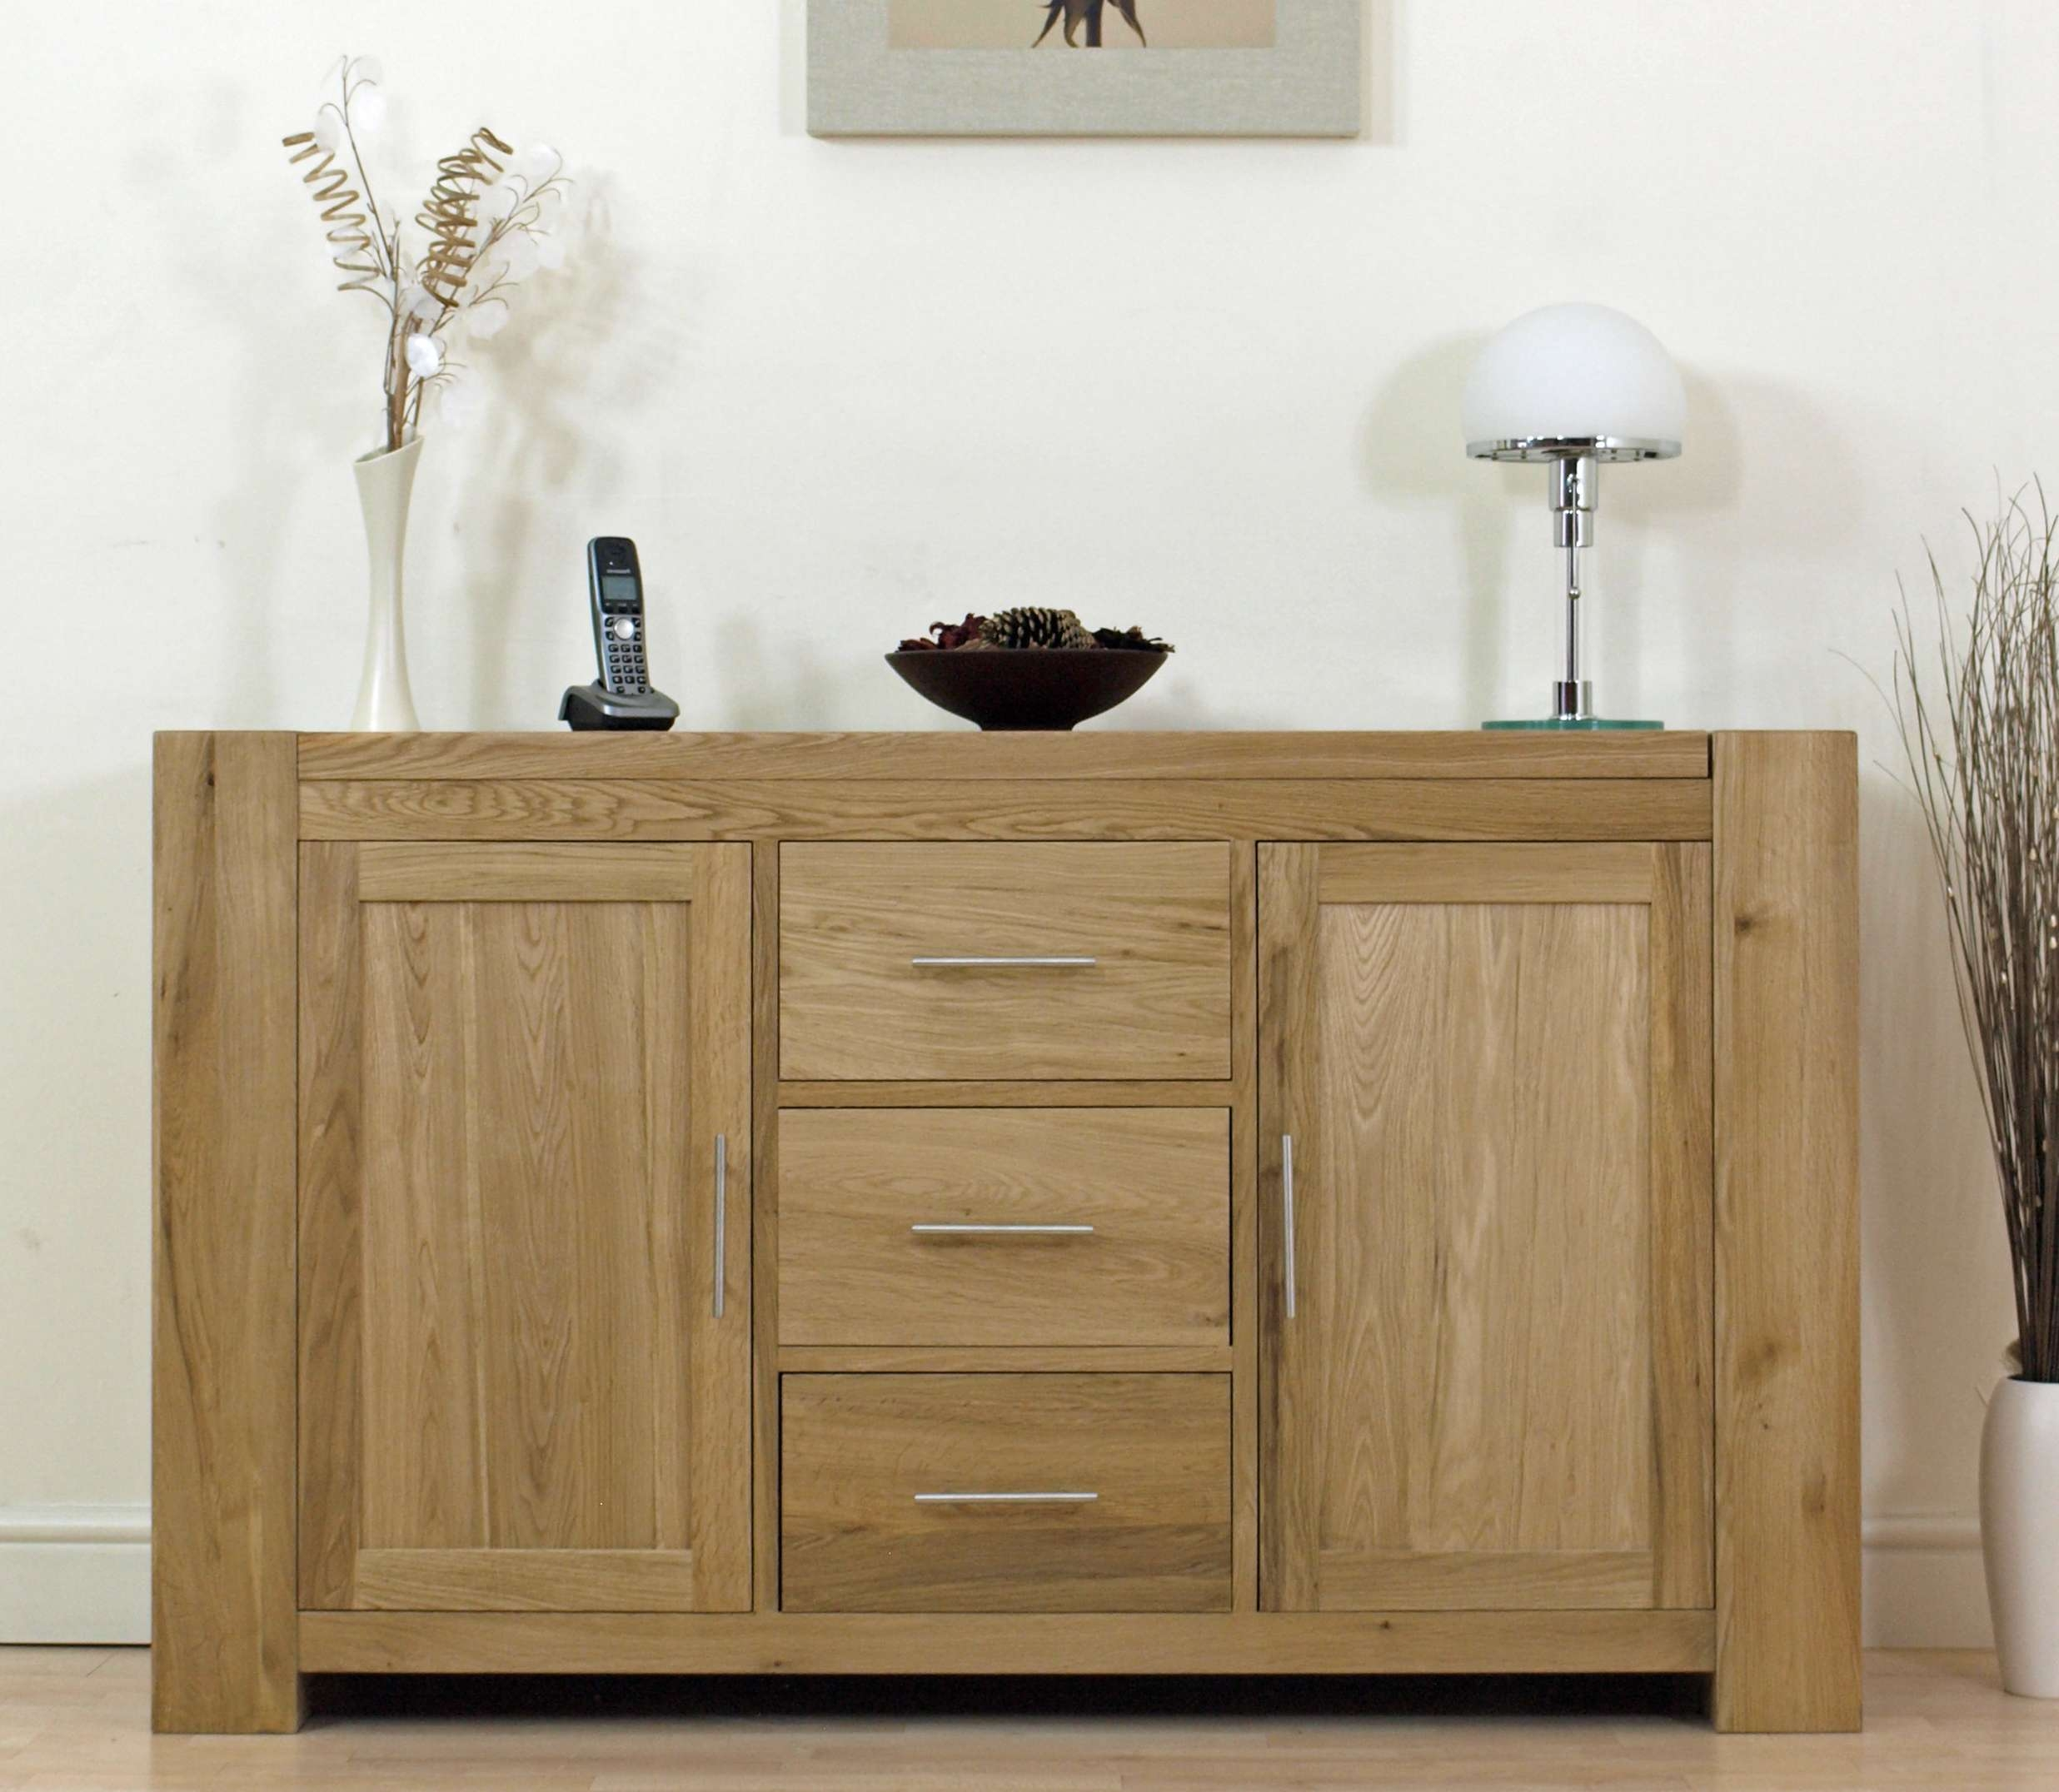 Solid Oak Sideboard Is Your First Choice Living Room Furniture – Hgnv Throughout Sideboards Furniture (View 16 of 20)